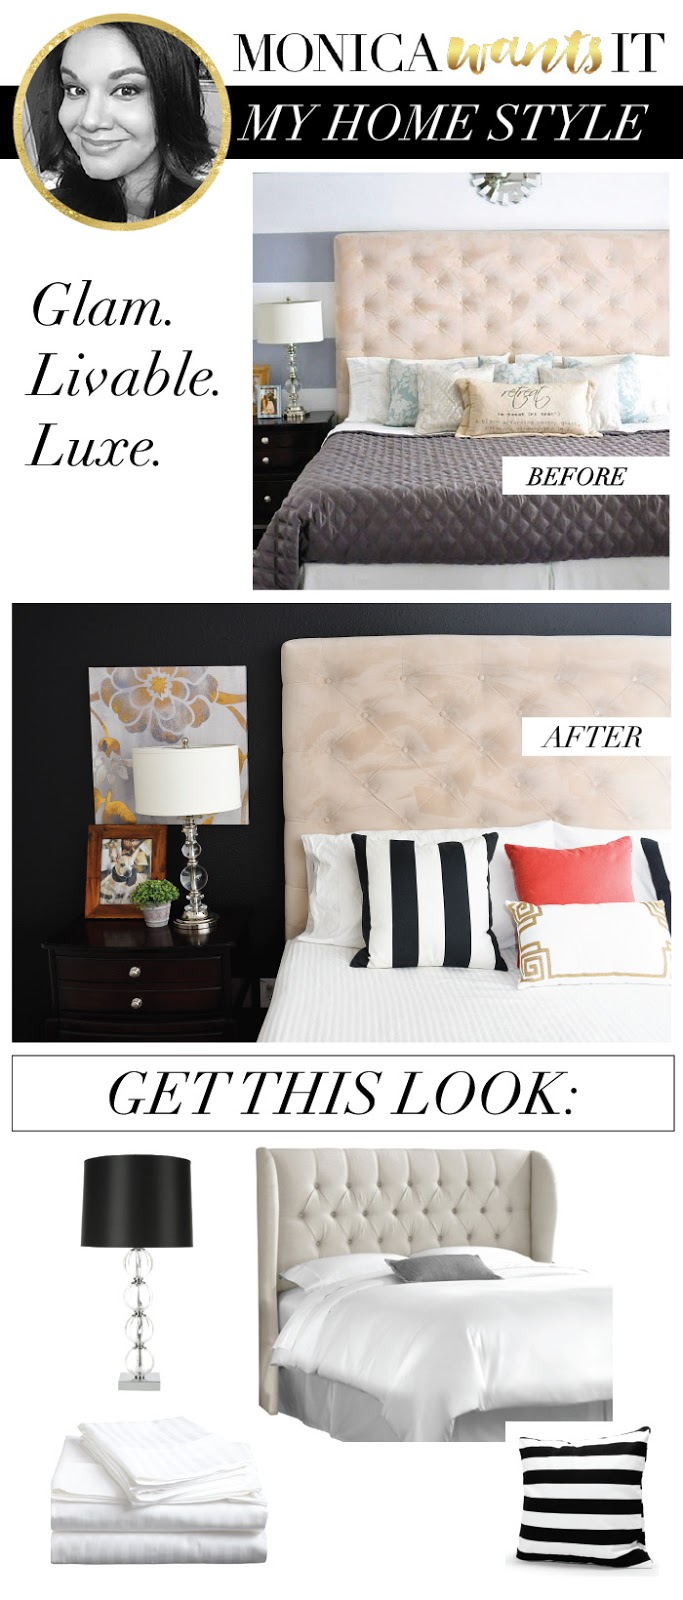 Learn how to get glam, livable luxe decor in your home.